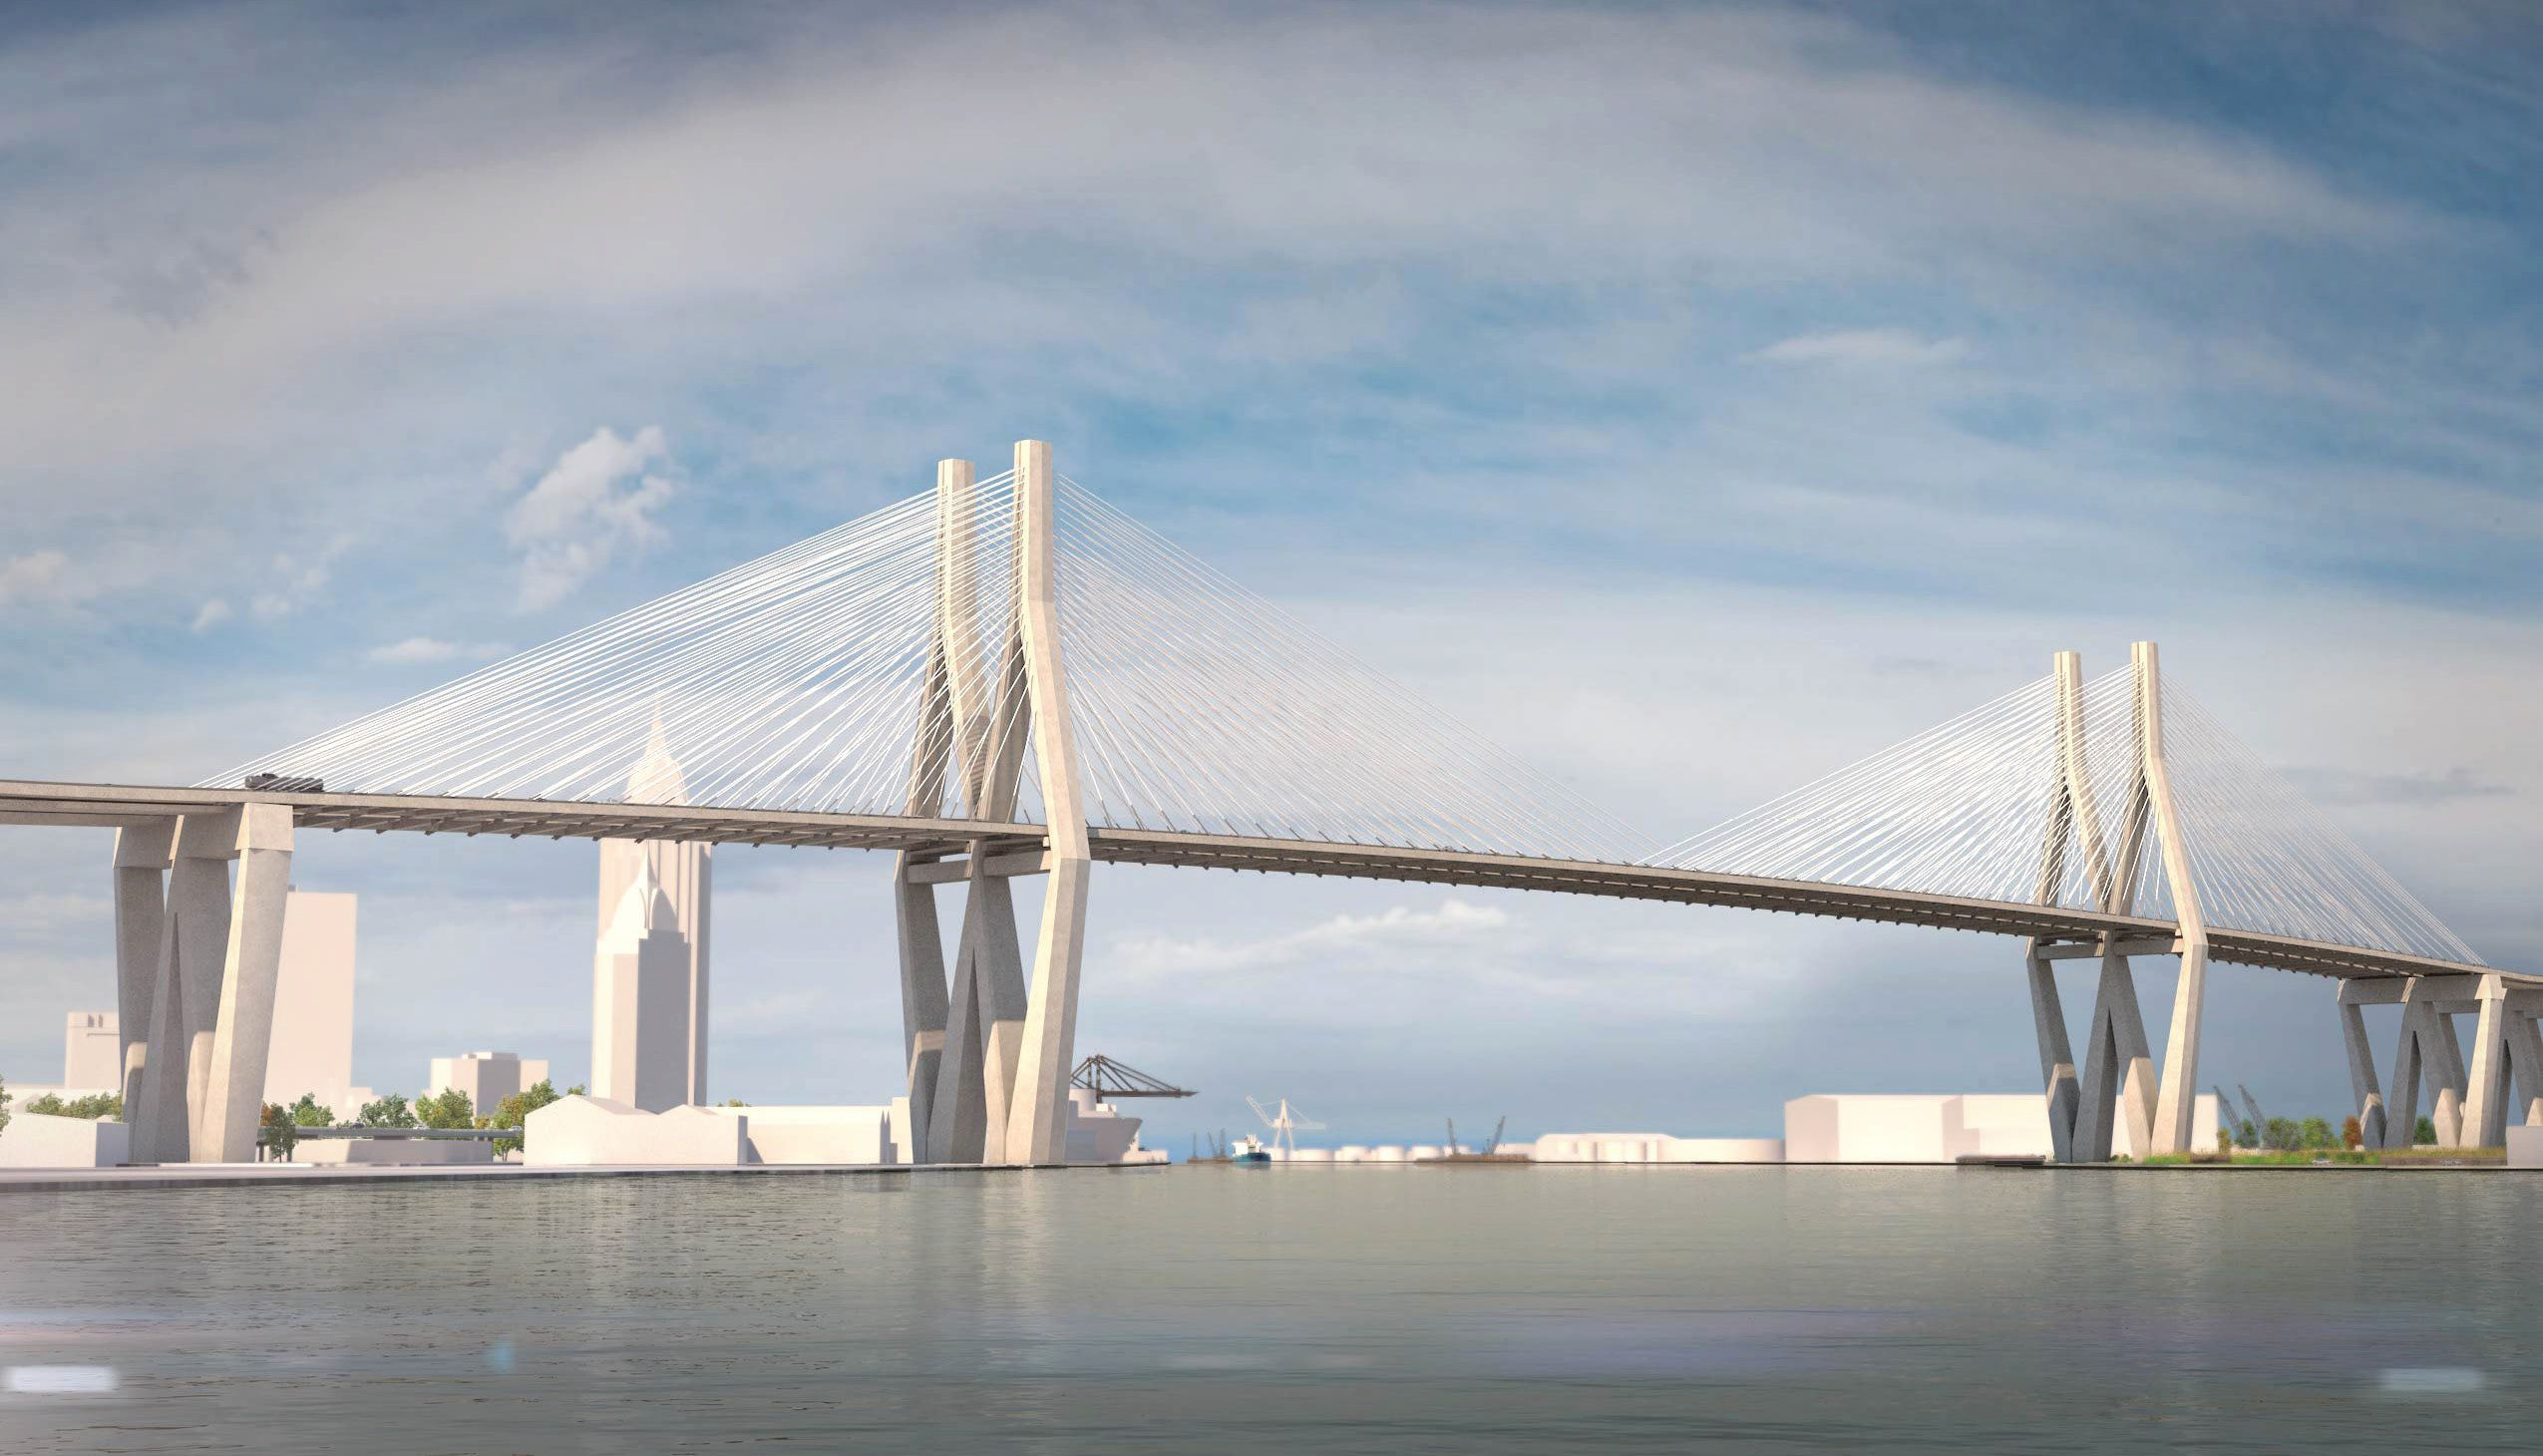 Toll opposition dominates I-10 Mobile River bridge project